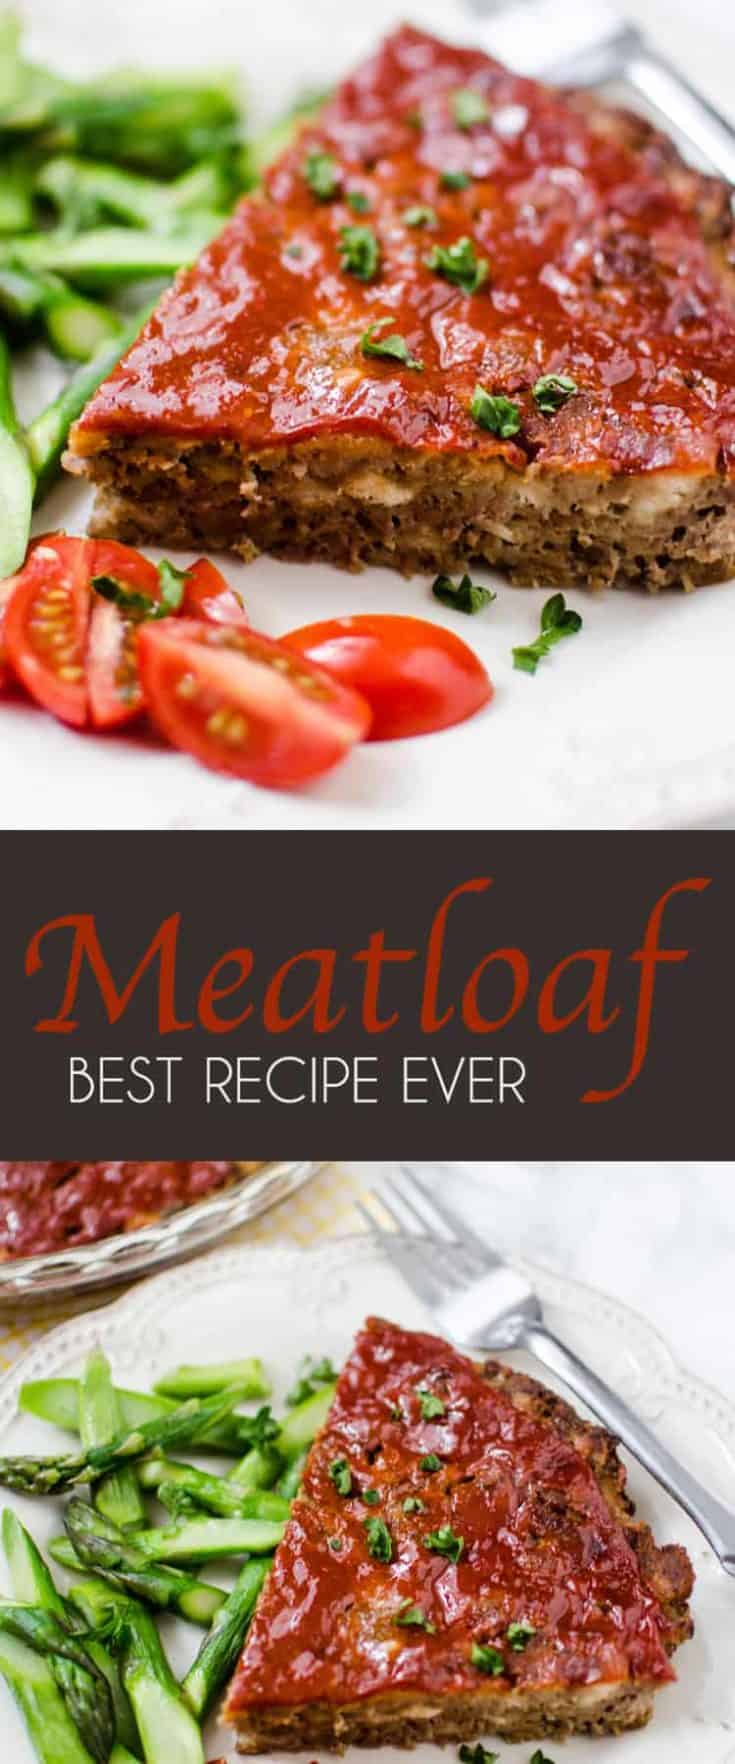 This BEST MEATLOAF RECIPE EVER was an immediate 'I must have this recipe!' moment, and I've been making it regularly ever since - for years in fact. Simple and outstanding in taste! #meatloaf #meatloafrecipe #bestmeatloaf #dinner